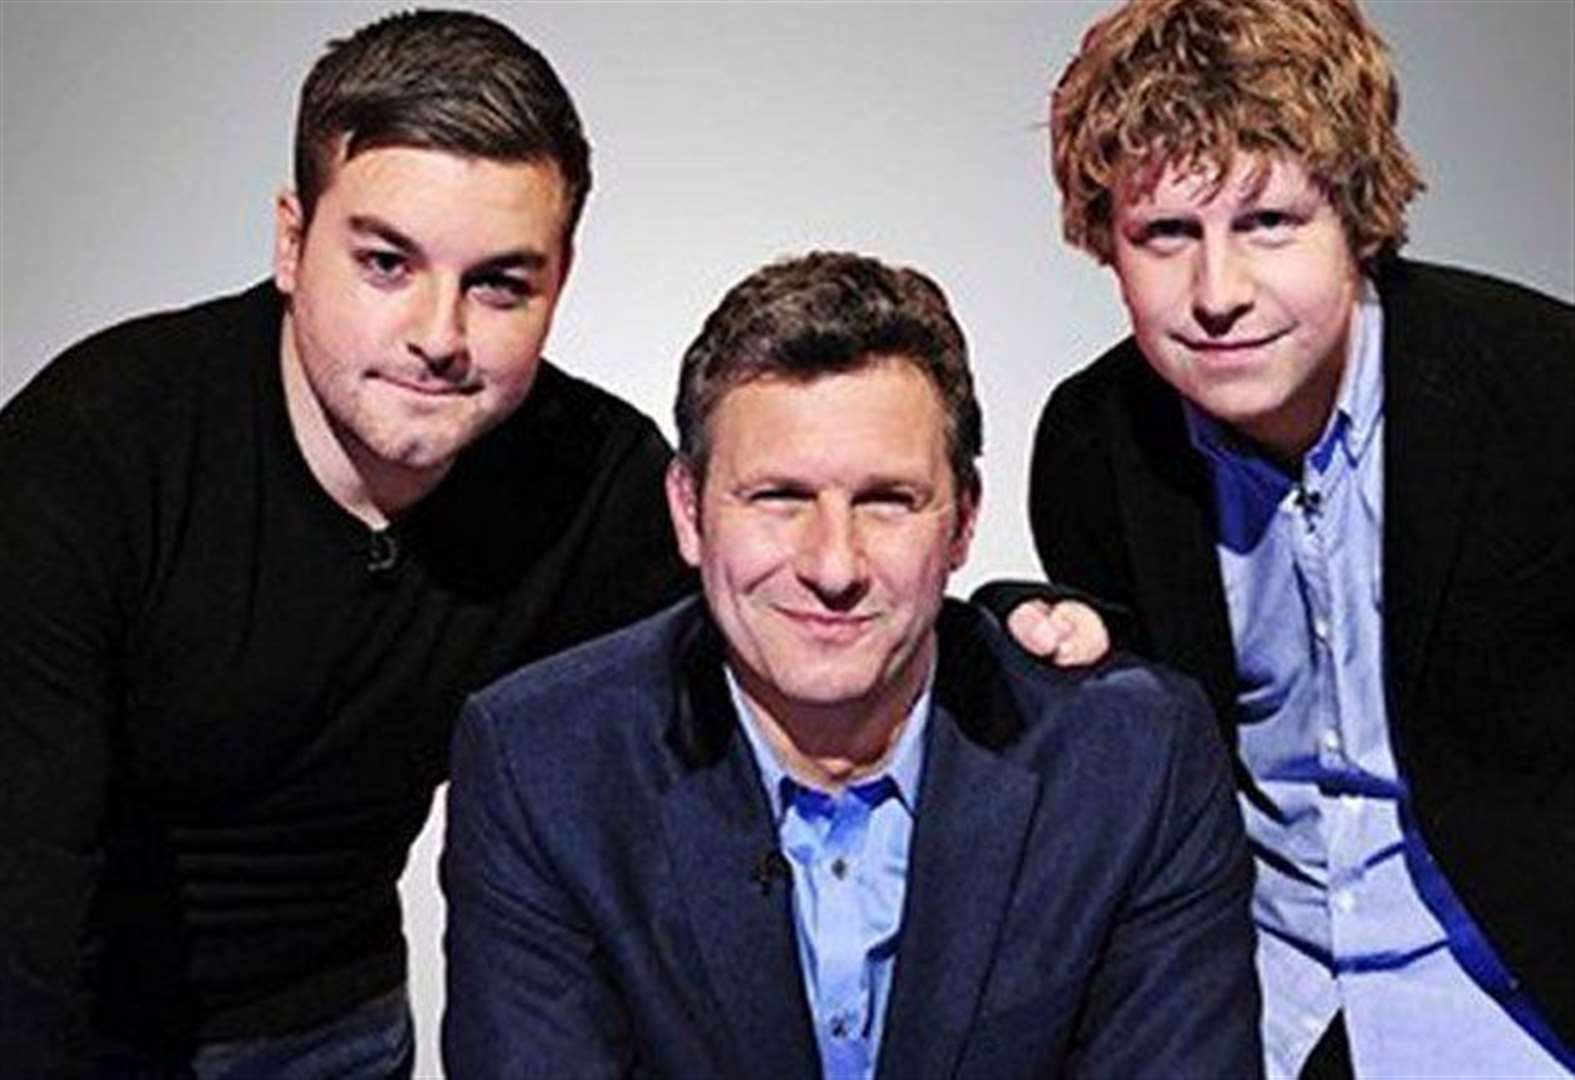 Stamford Mercury raises laughs on Channel 4's The Last Leg